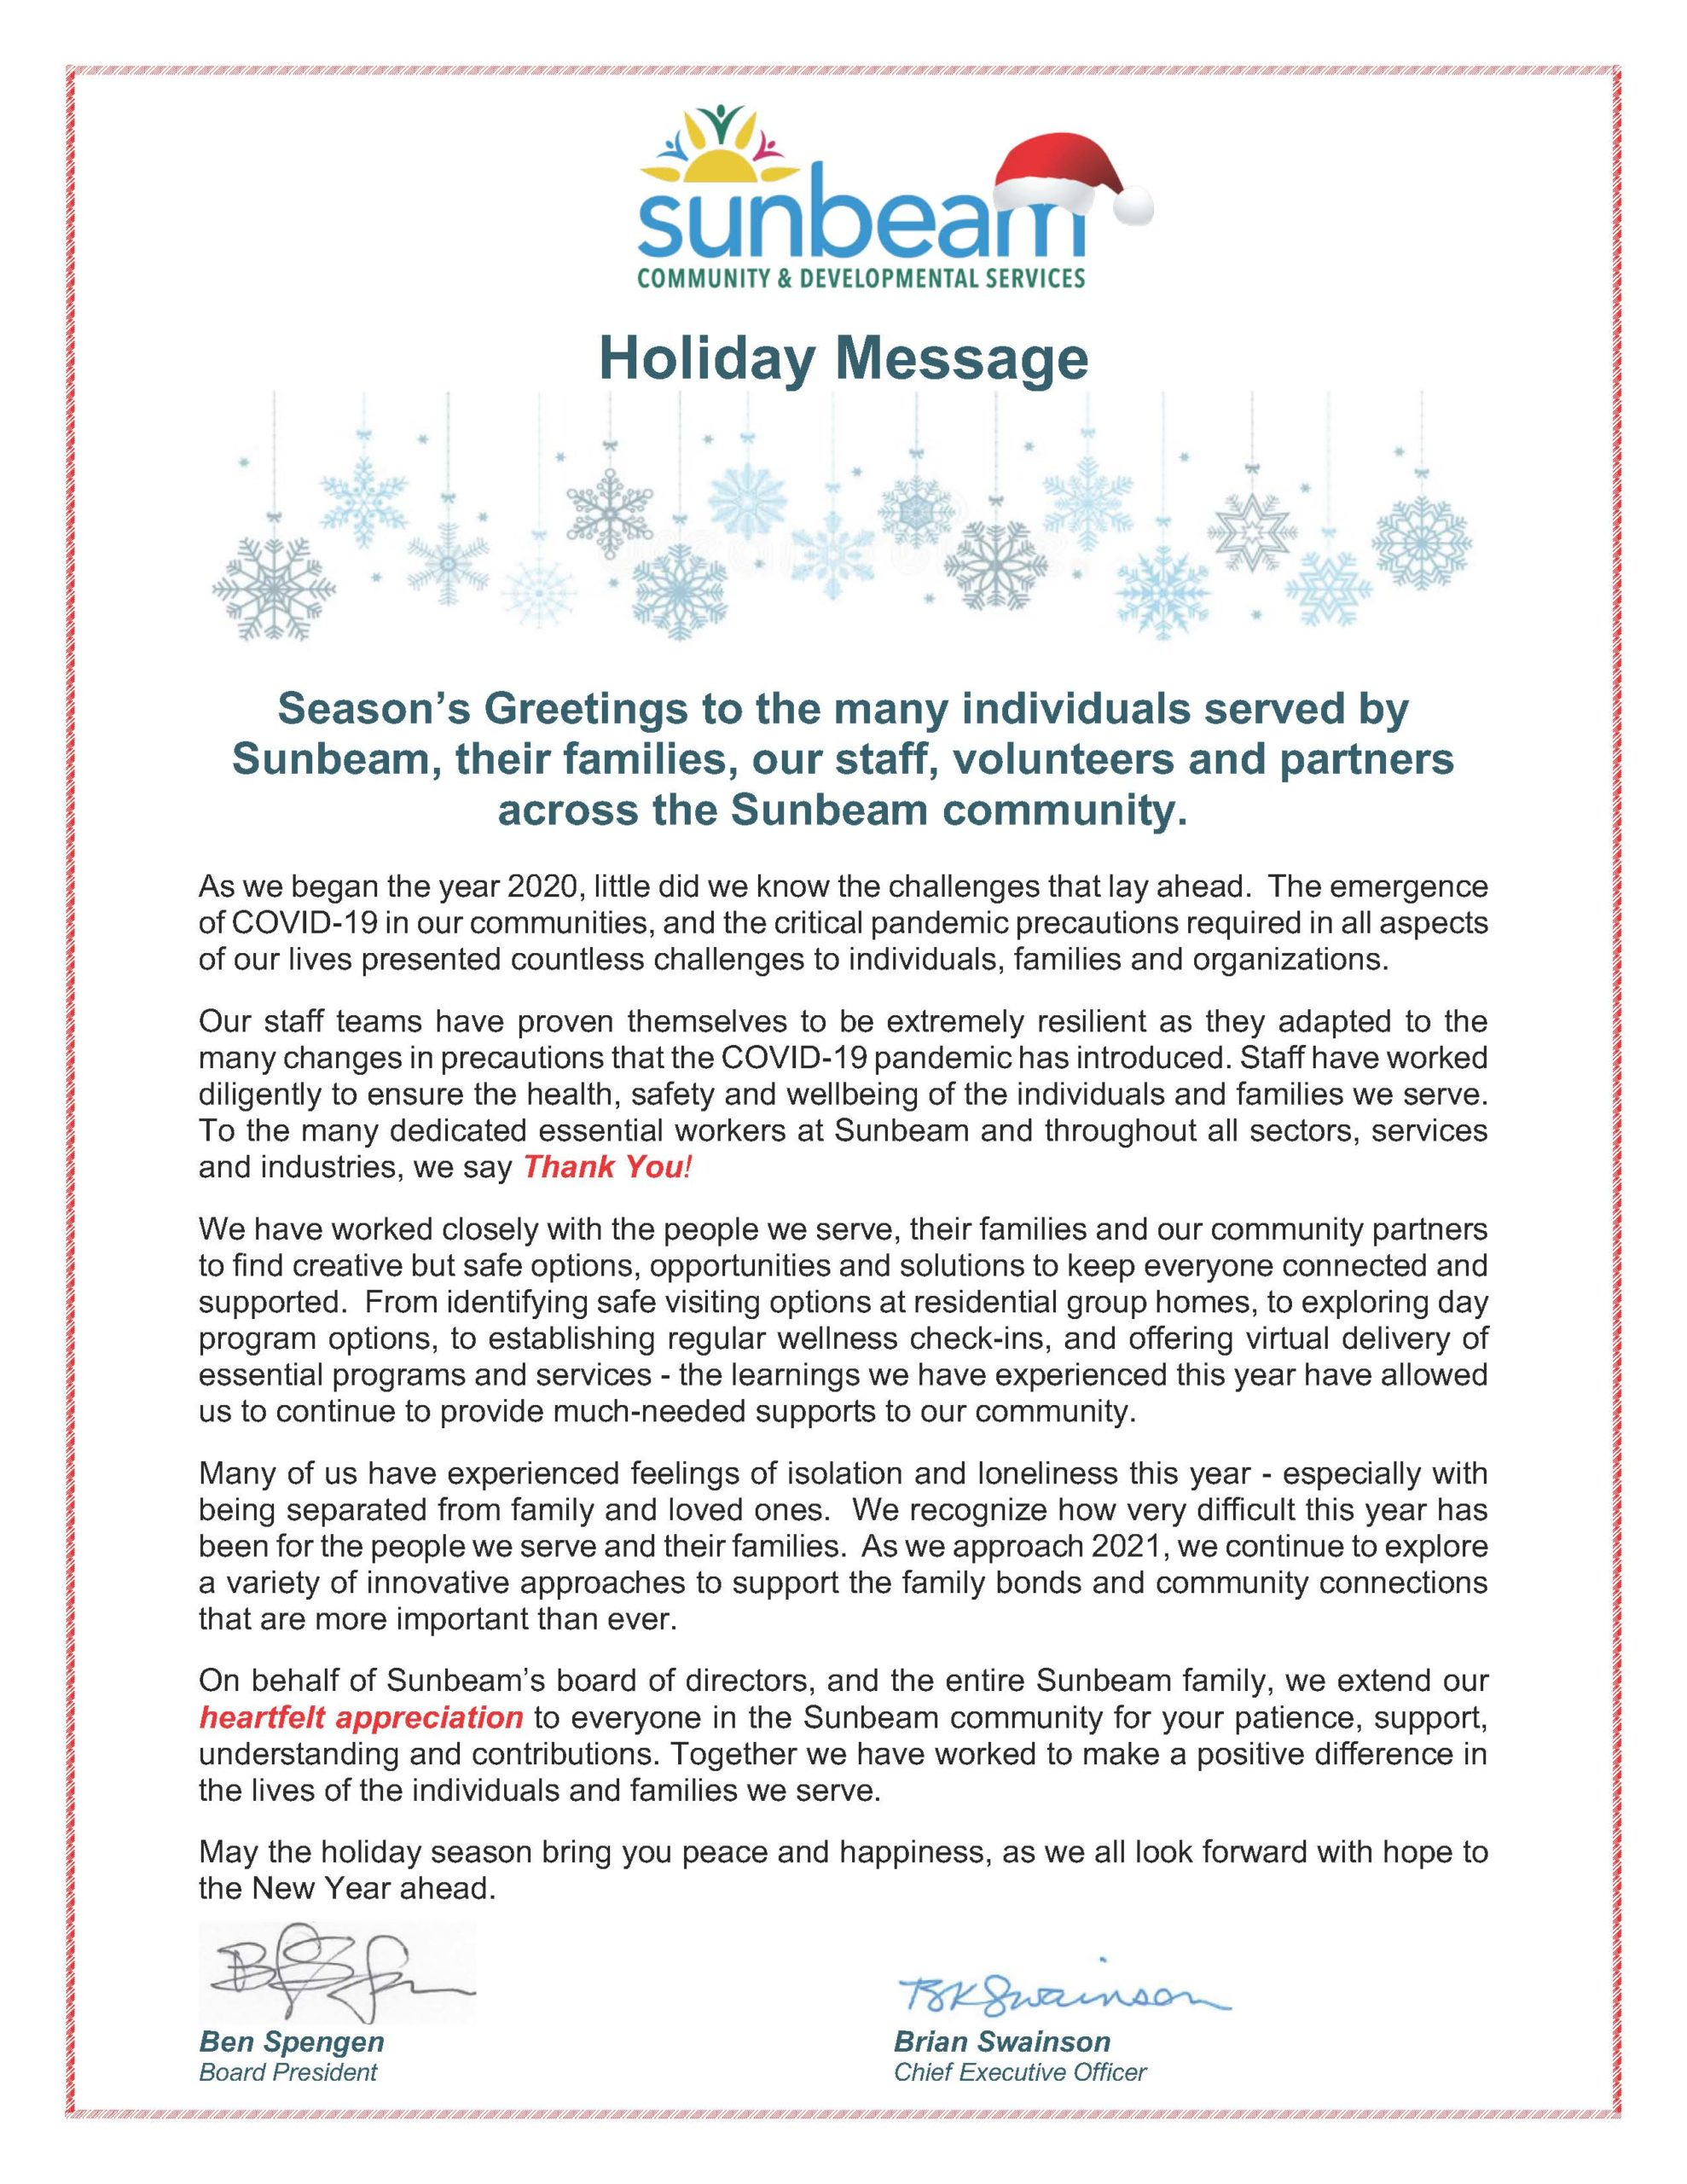 Sunbeam Community Holiday Message